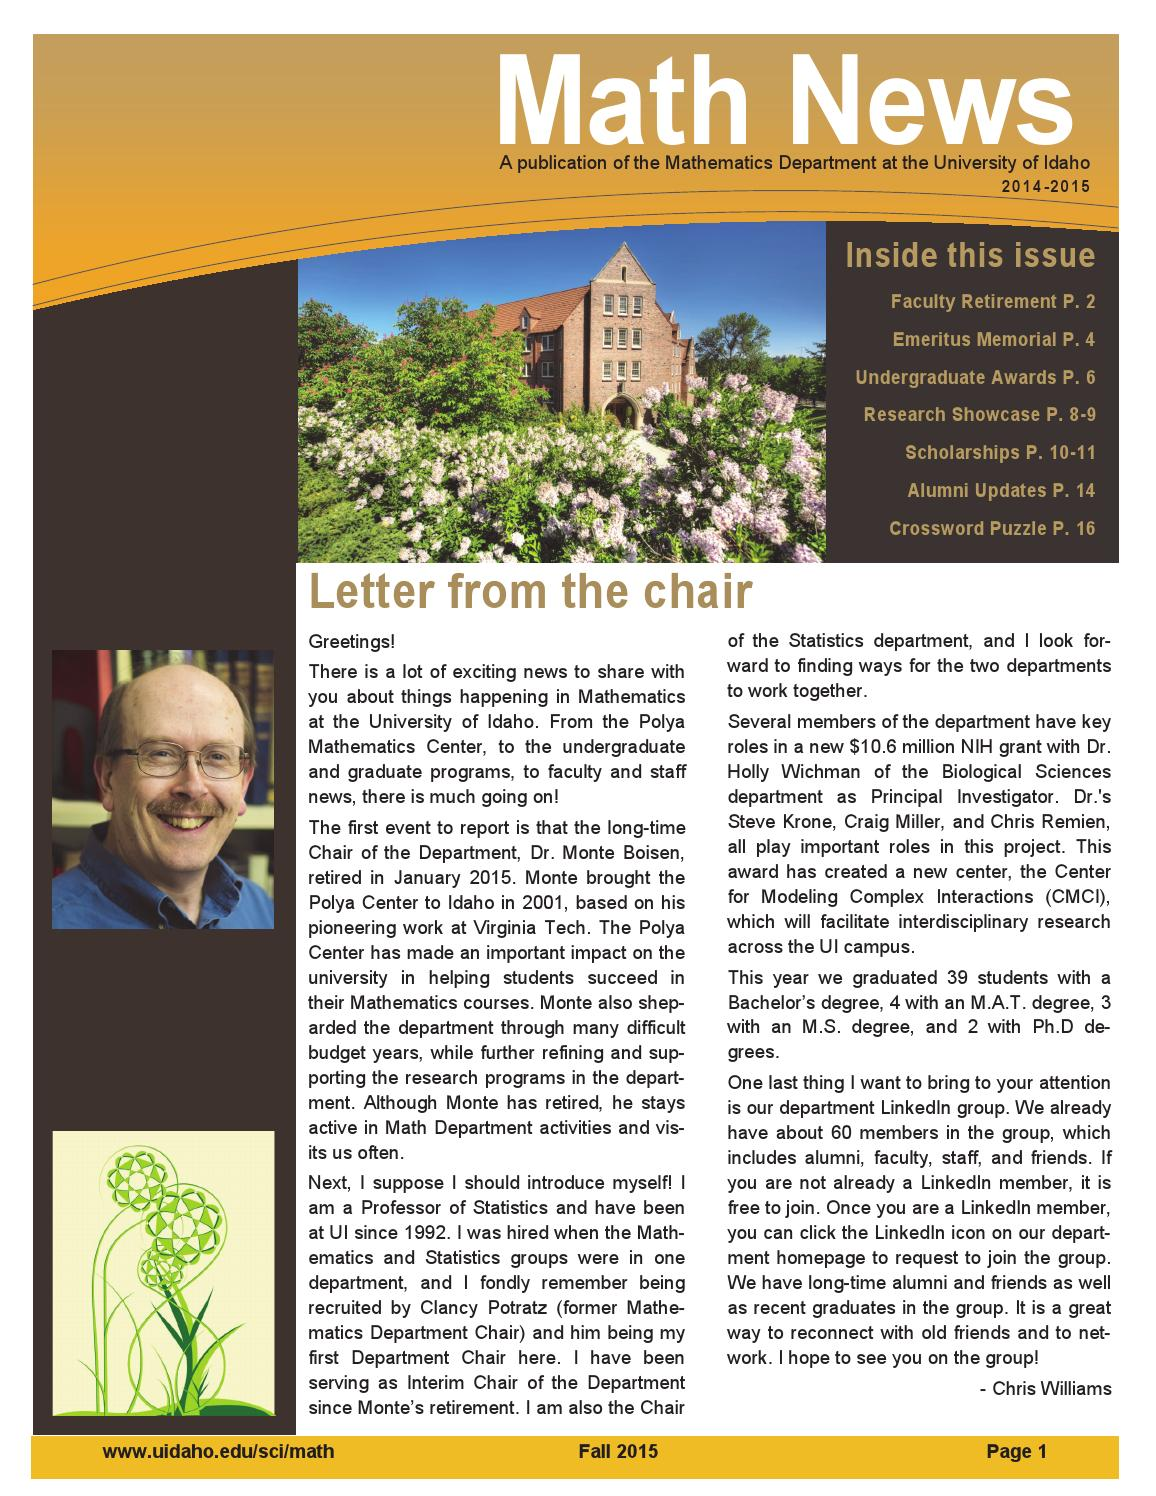 Math News 2014-2015 | Department of Mathematics by The University of Idaho - issuu